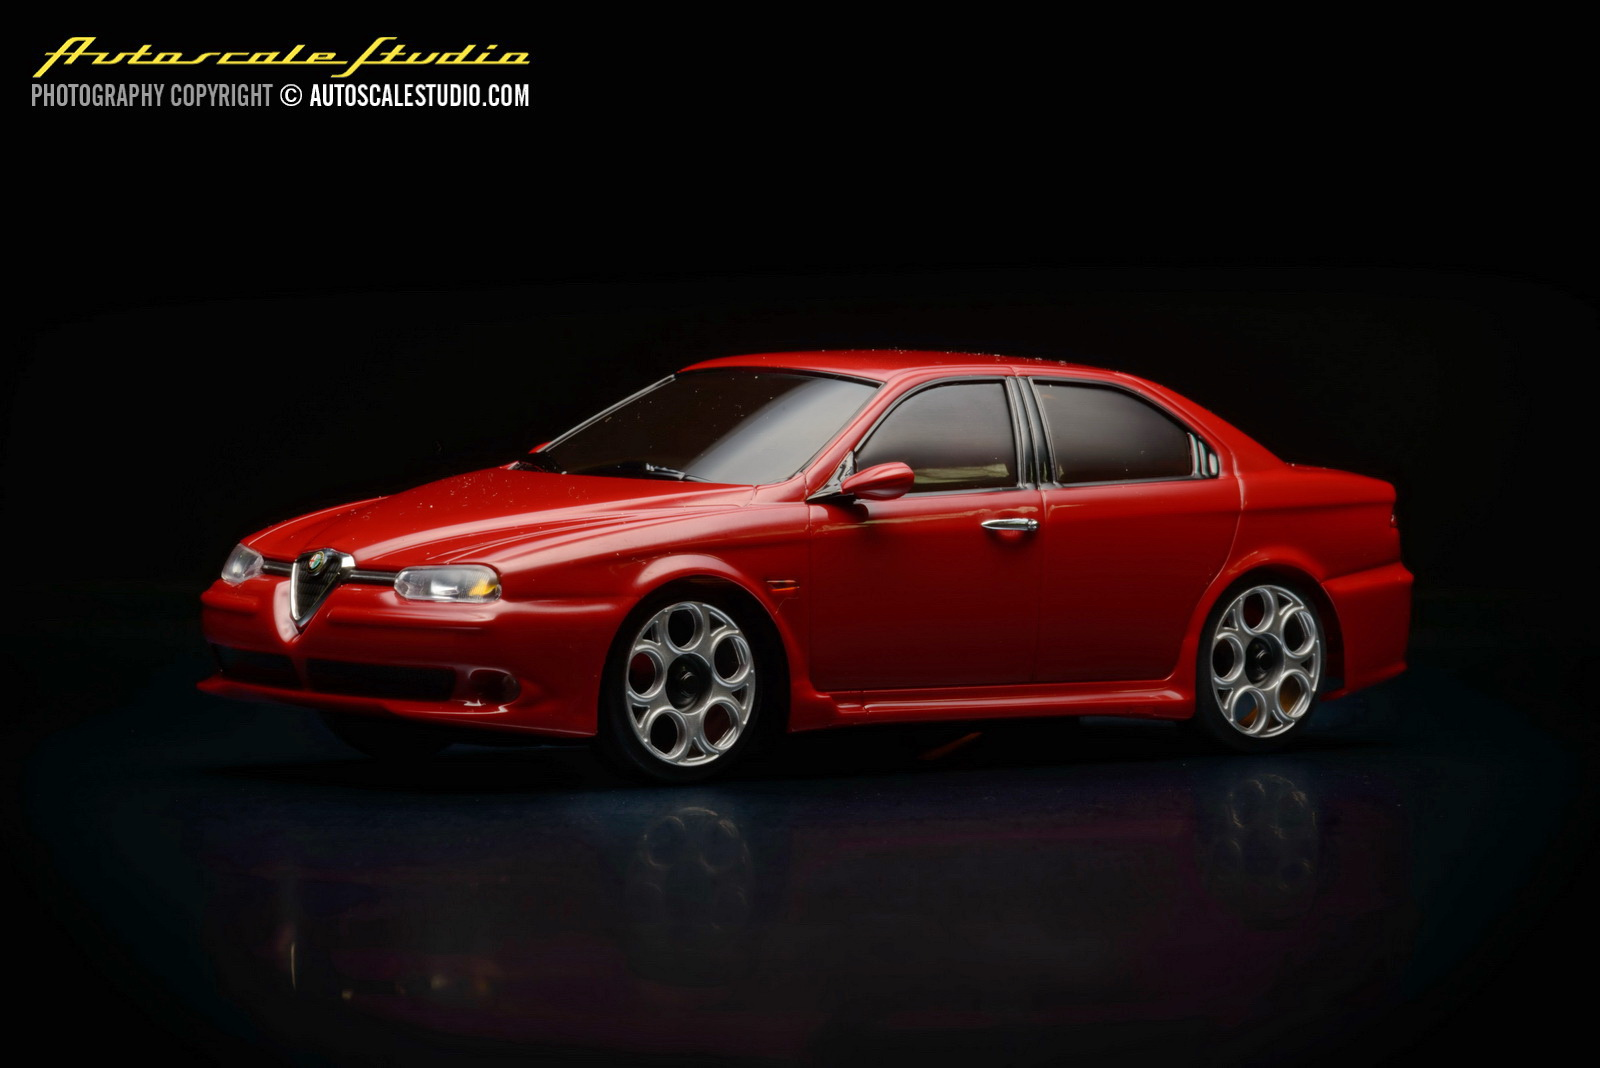 mzg106r alfa romeo 156 gta red autoscale studio. Black Bedroom Furniture Sets. Home Design Ideas